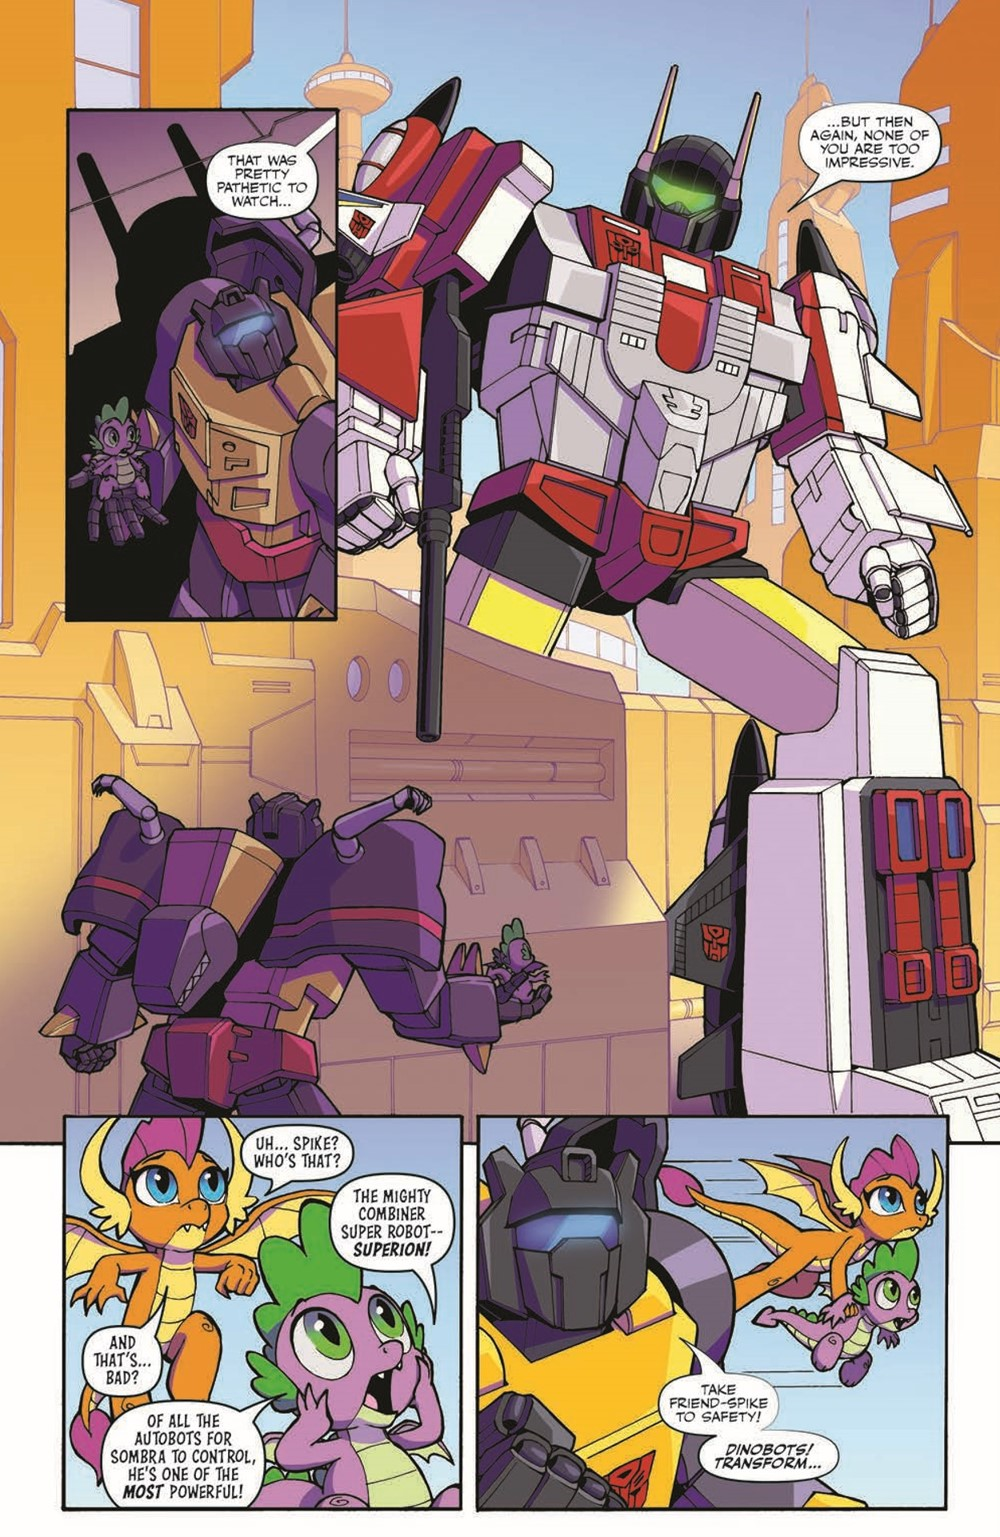 TFMLP2-04-pr-6 ComicList Previews: MY LITTLE PONY TRANSFORMERS II #4 (OF 4)